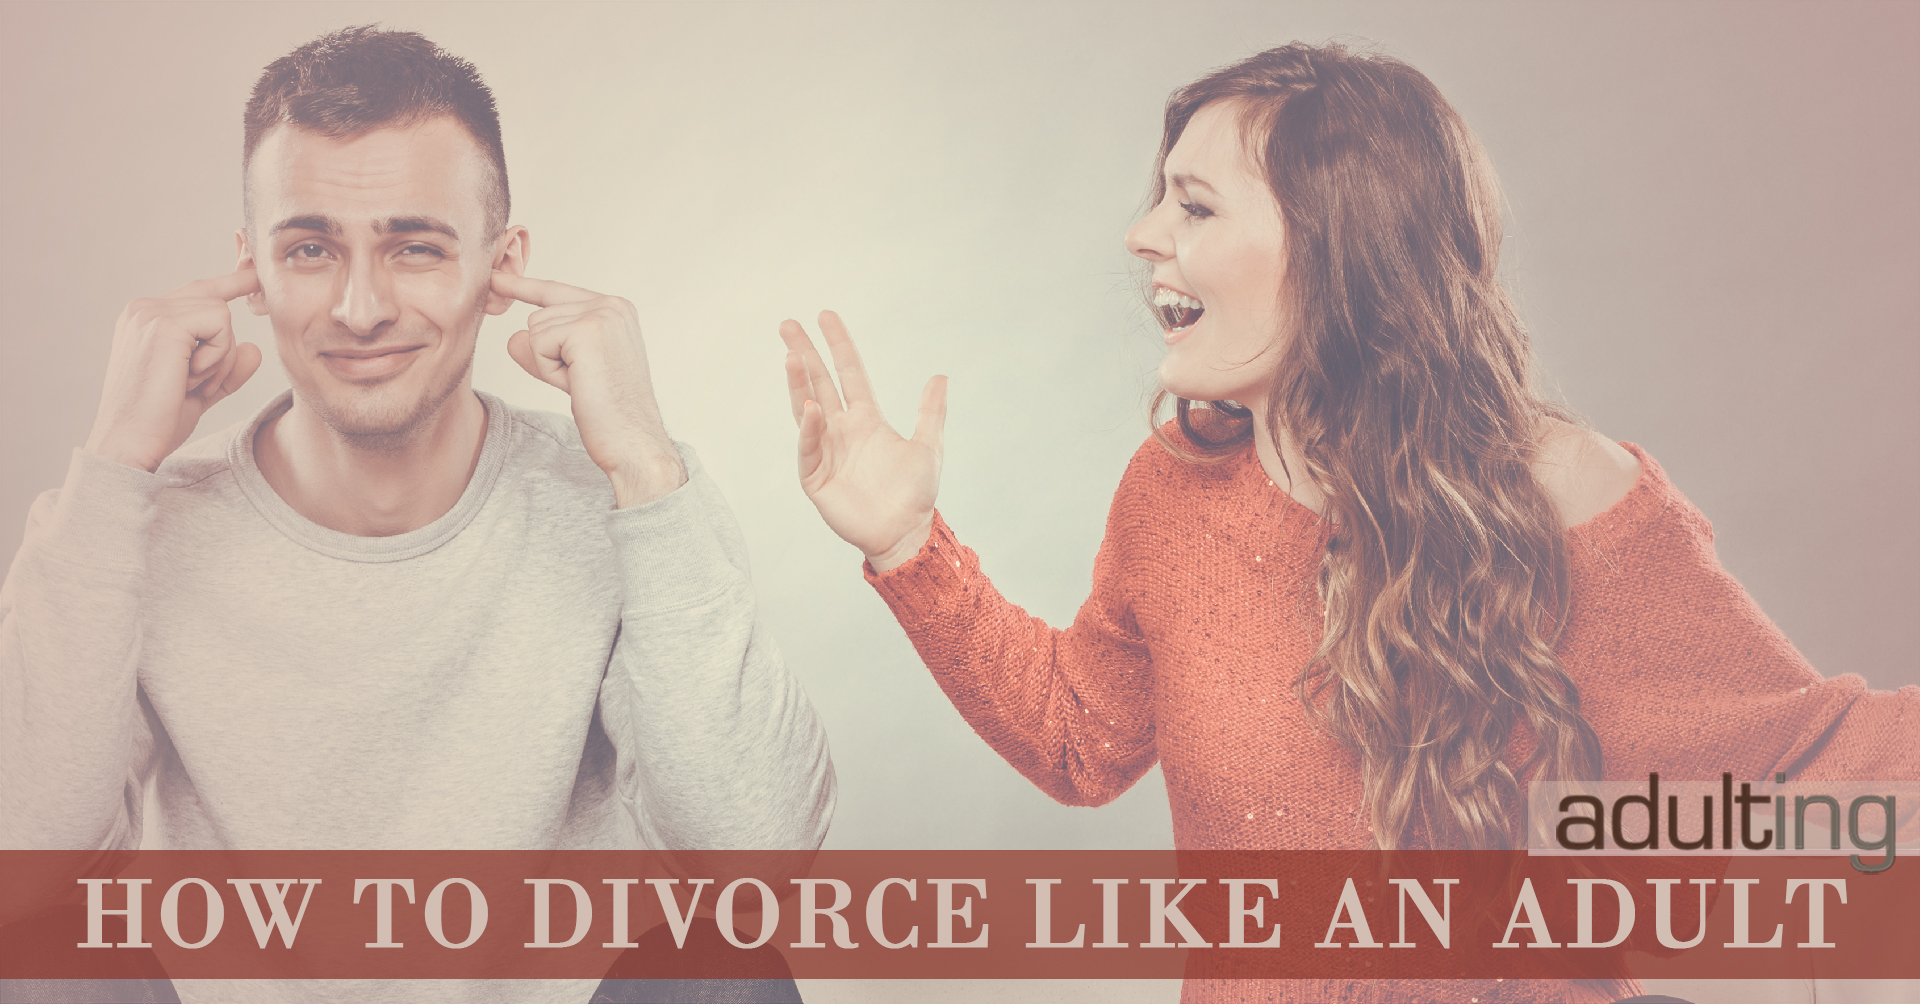 How to Divorce Like an Adult: Keep Calm and Communicate